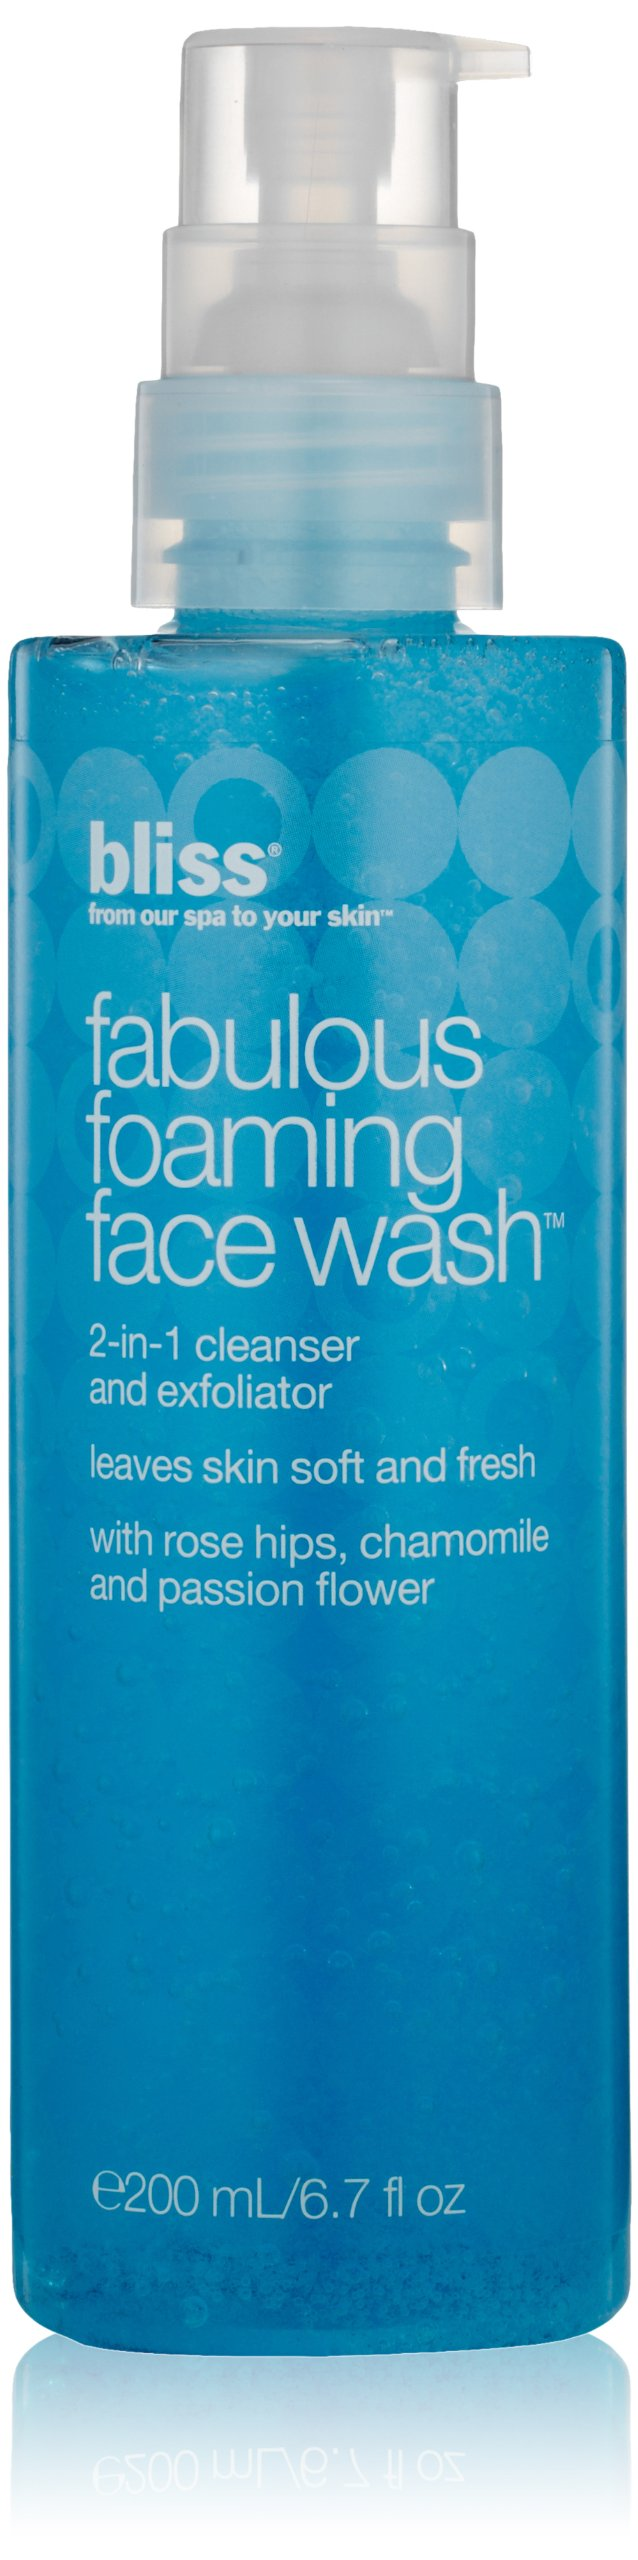 bliss Fabulous Foaming Face Wash | Ideal for All Skin Types | Oil Free | Two in One Facial Cleanser + Exfoliator | Perfect for Gentle, Everyday Use for Women & Men | Fresh & Fruity Scent